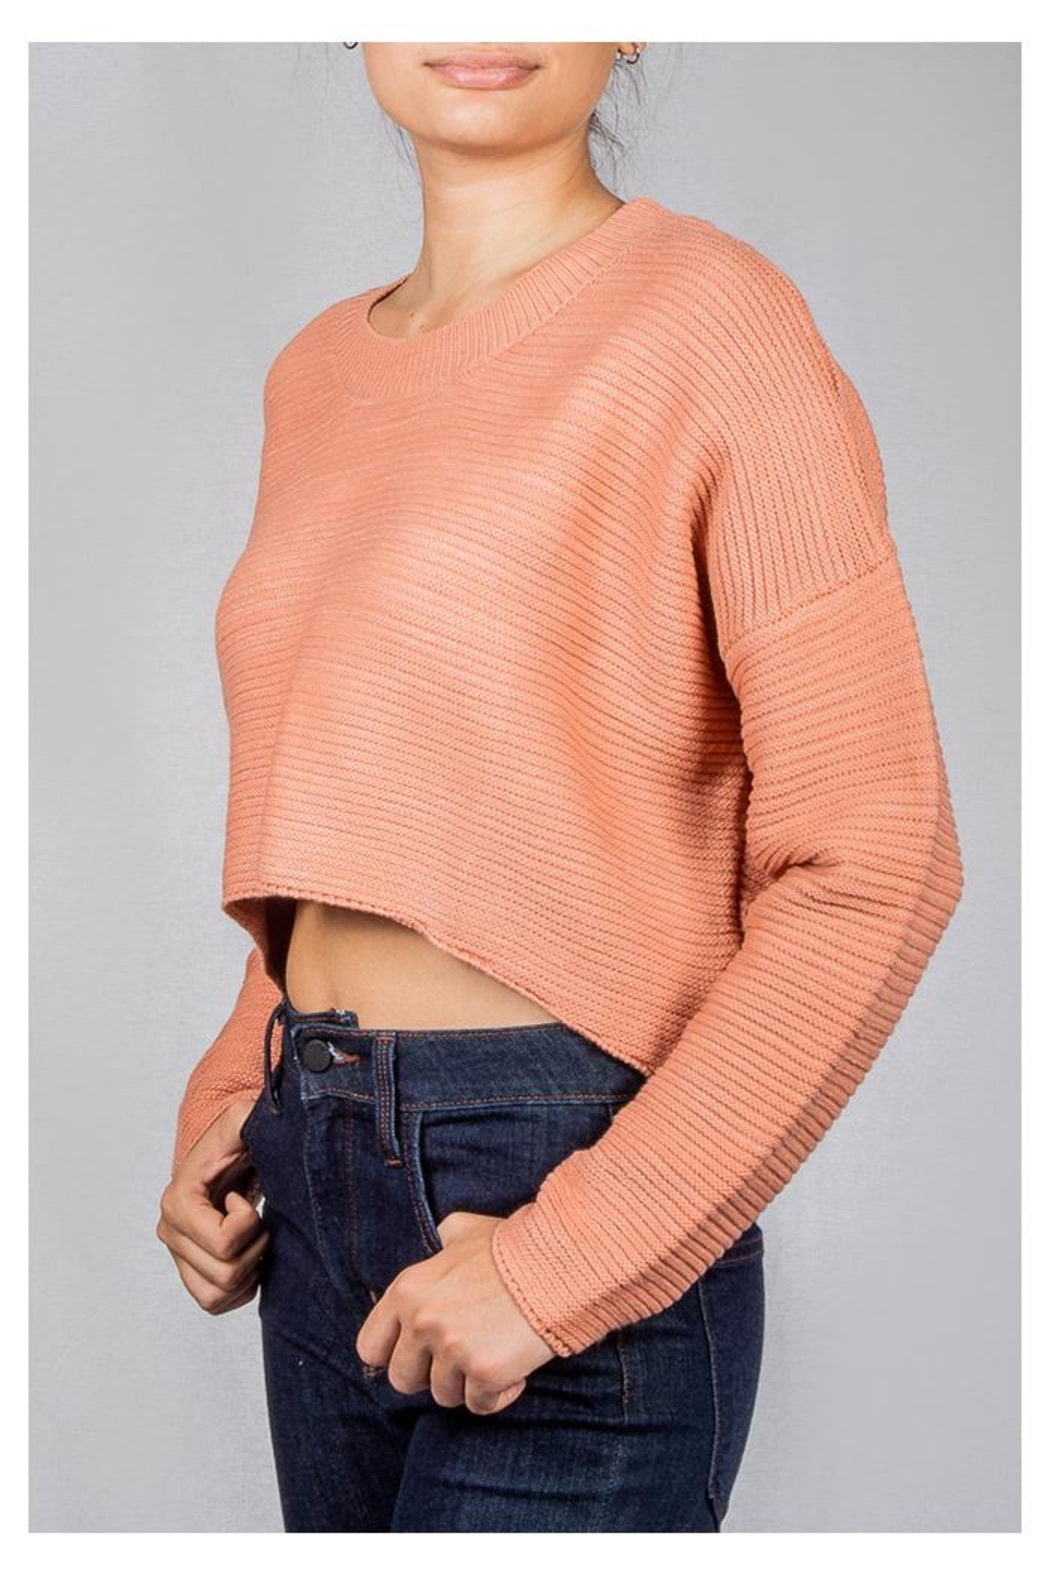 Audrey 3+1 Bubblegum Ribbed Sweater - Front Full Image